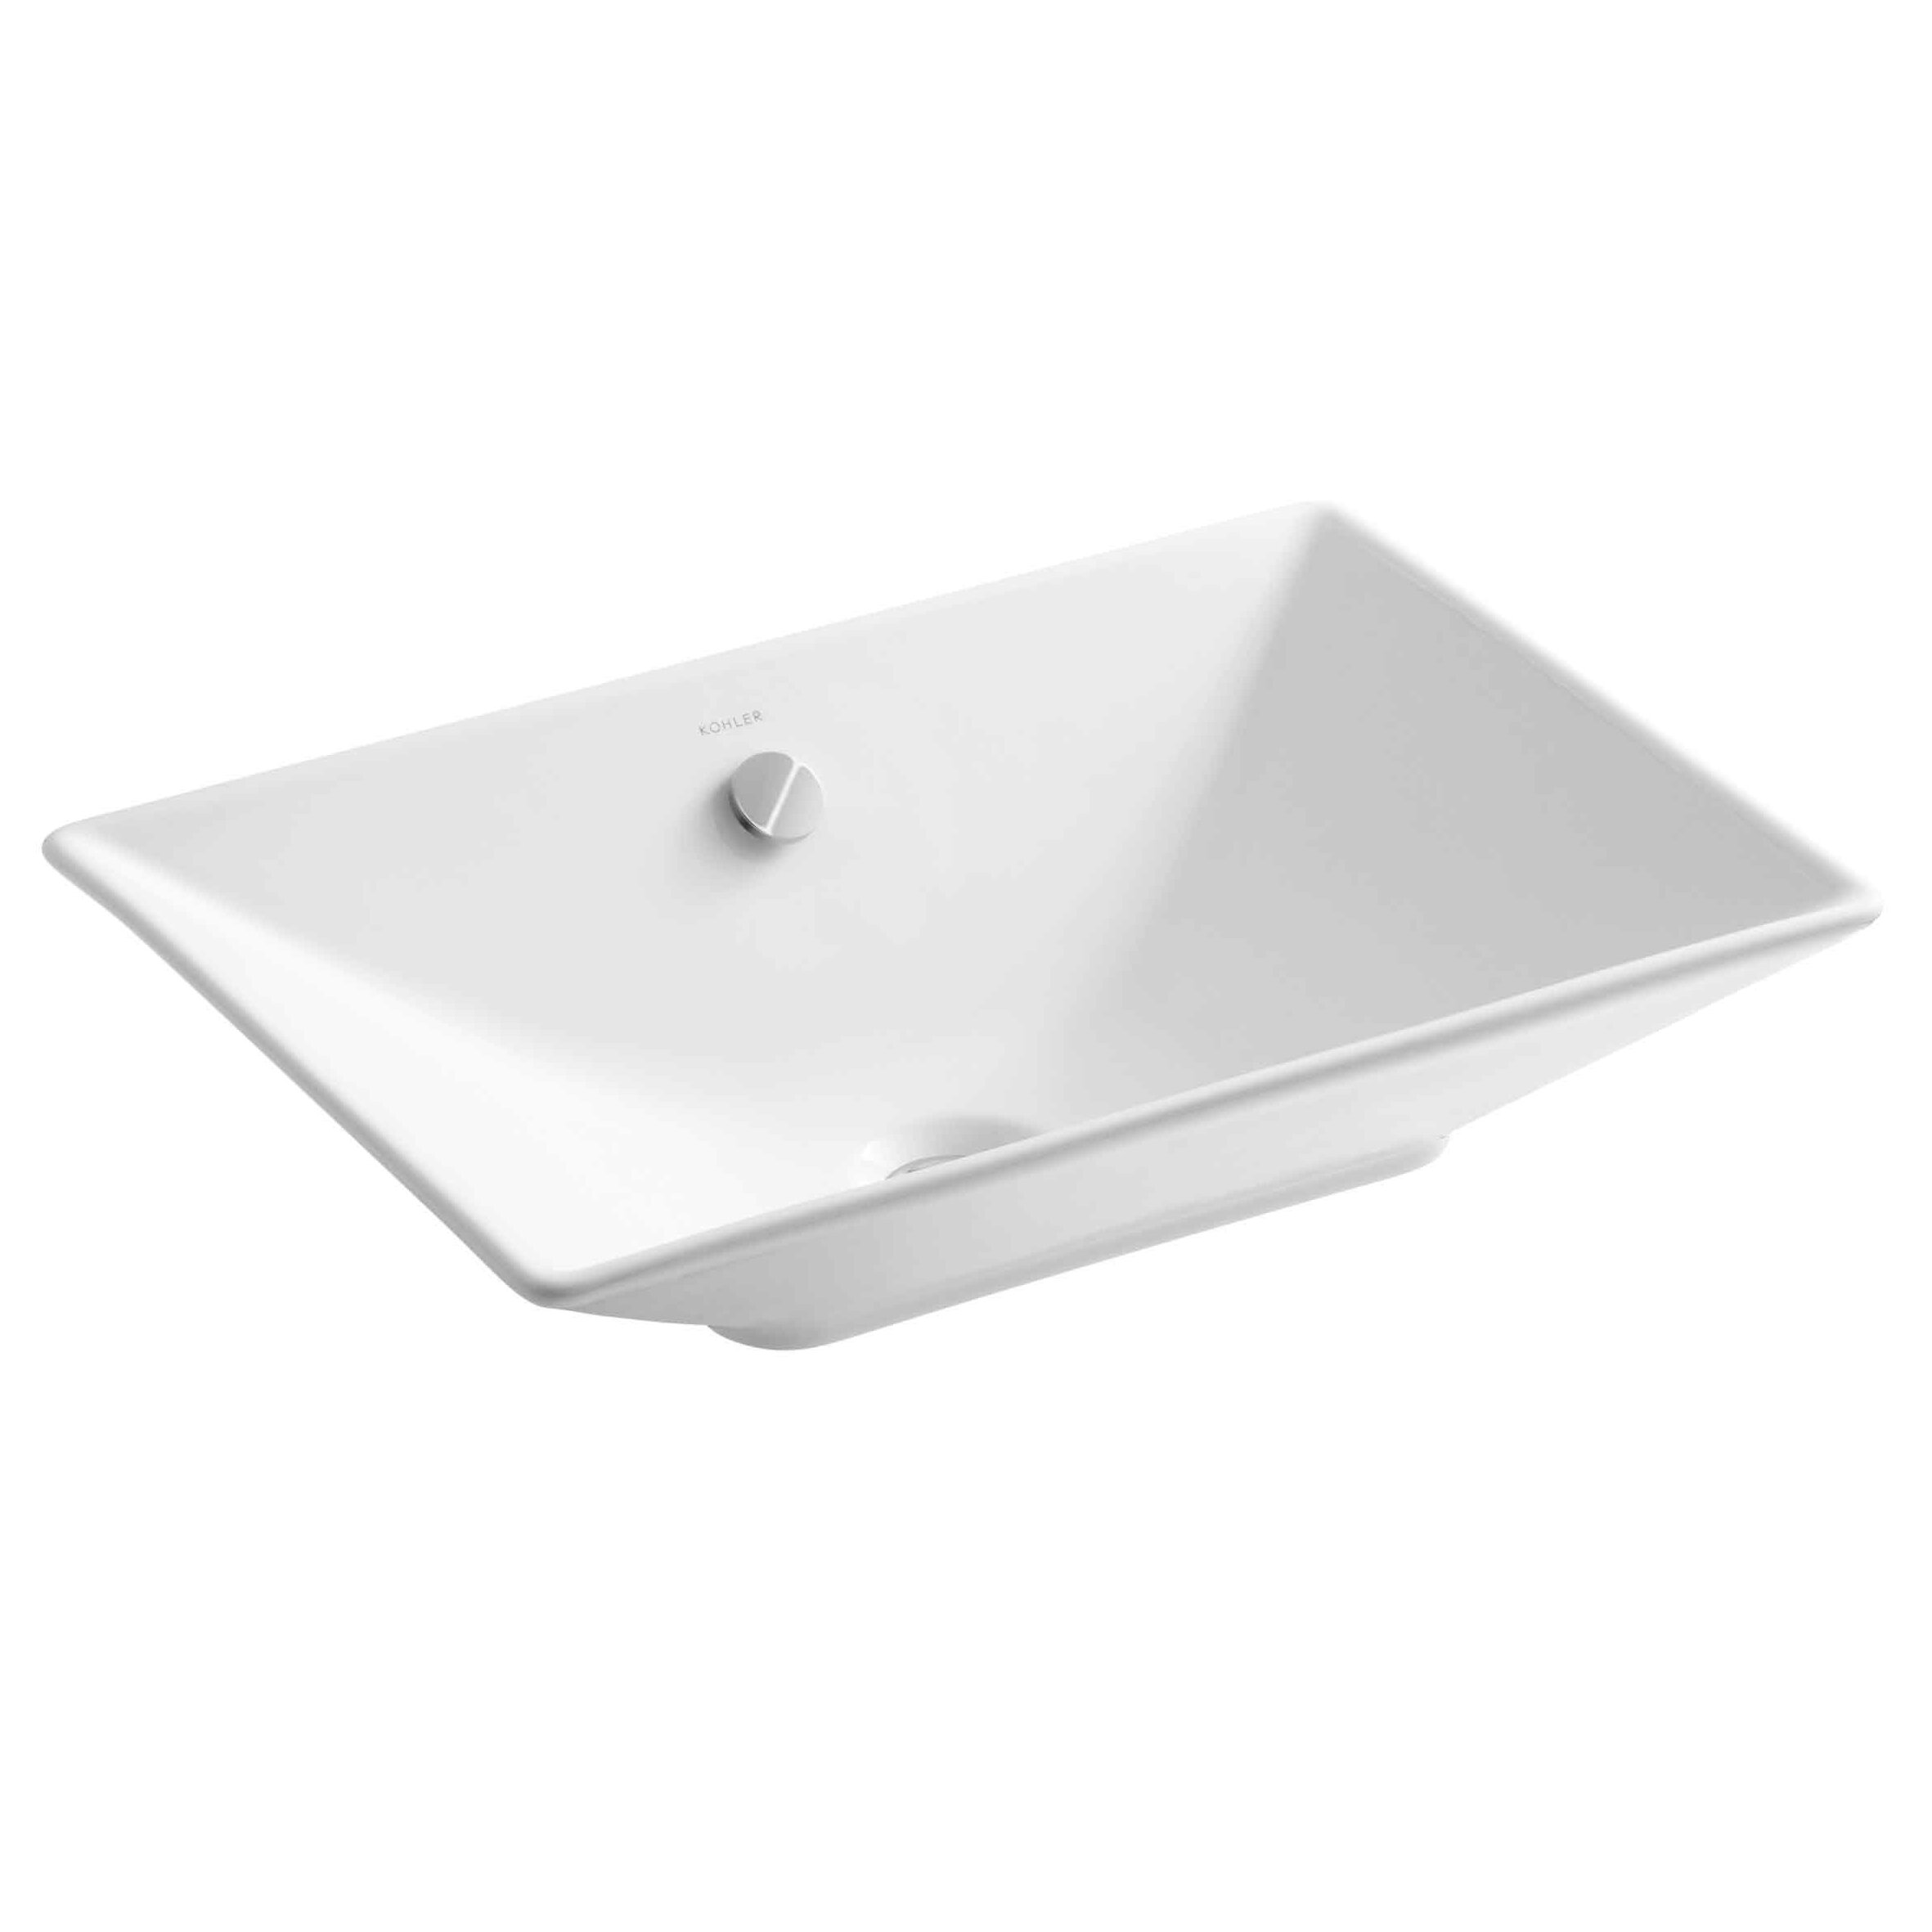 K 4819 0,47,96 Kohler Reve Ceramic Rectangular Vessel Bathroom Sink With  Overflow U0026 Reviews | Wayfair